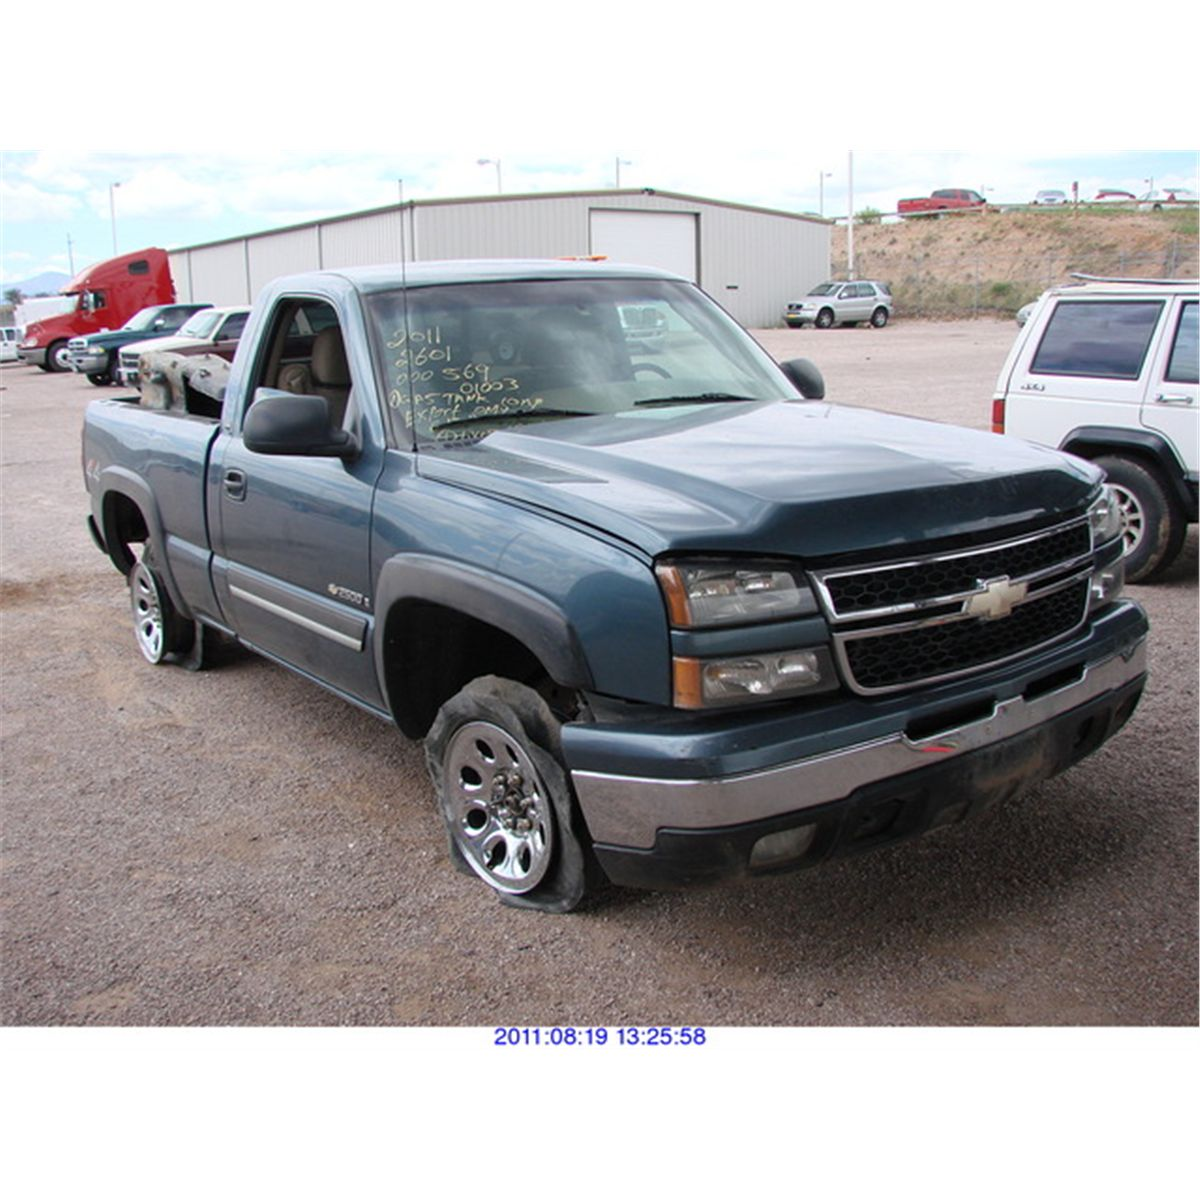 All Chevy chevy 2006 : 2006 - CHEVROLET CHEYENNE - Rod Robertson Enterprises Inc.